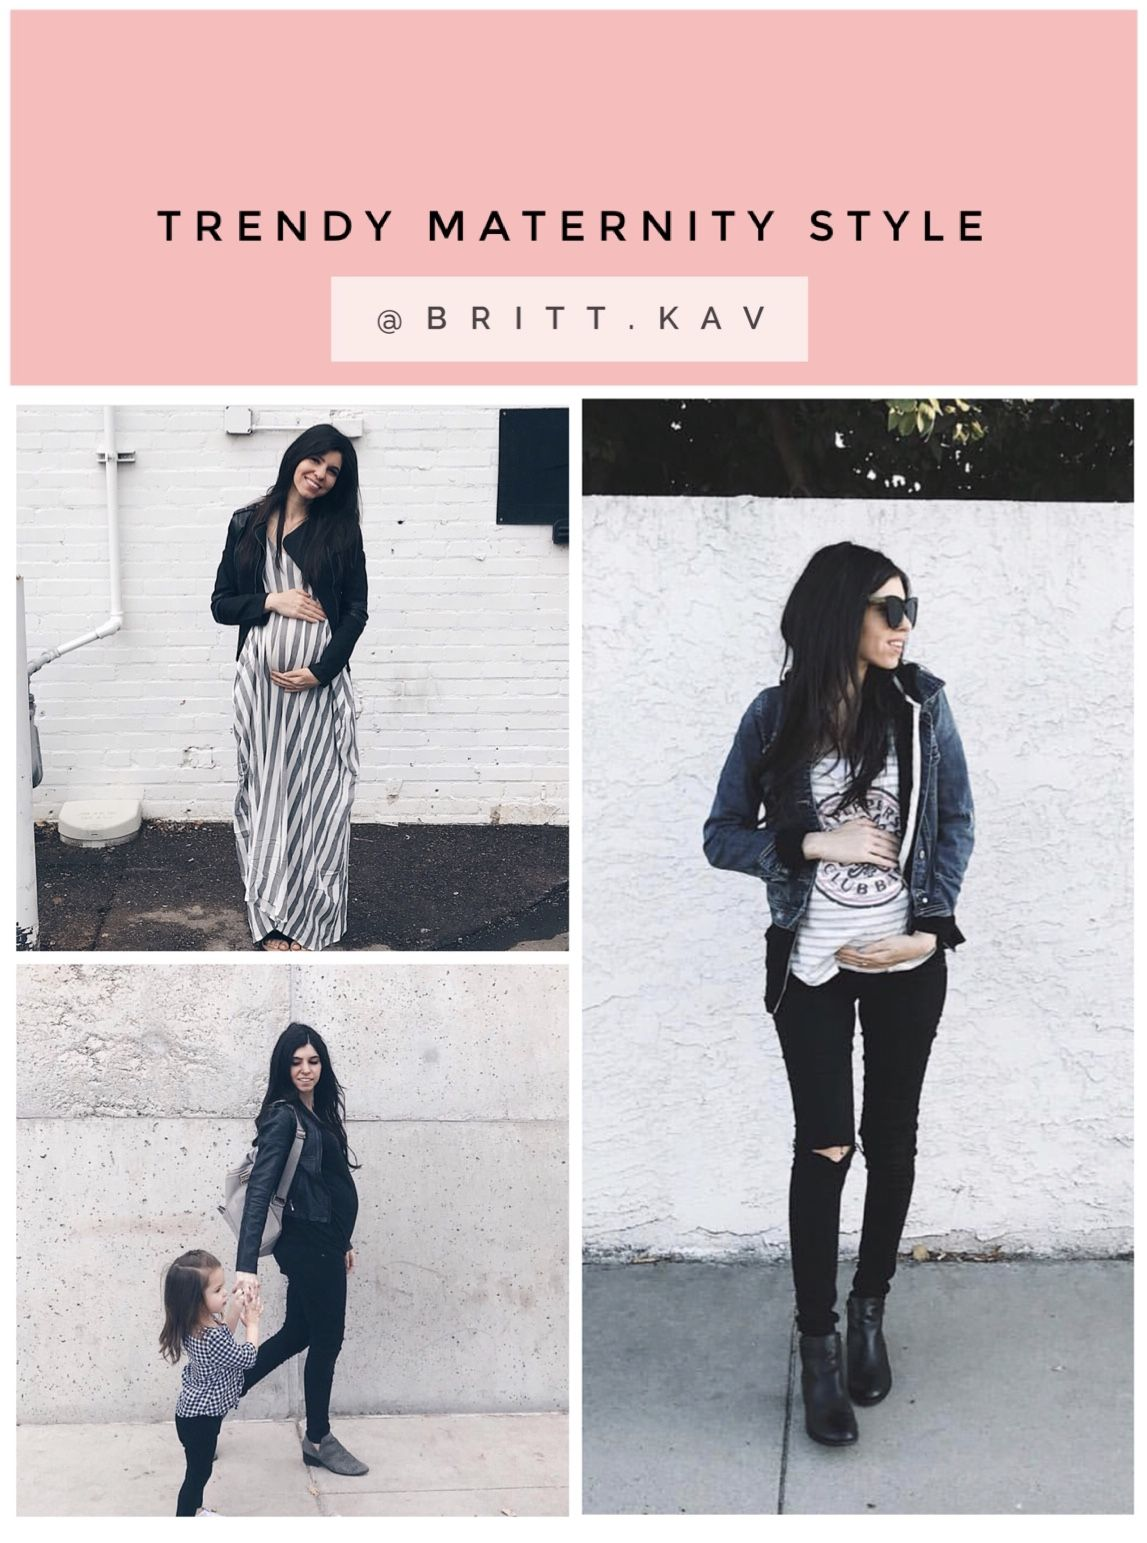 8e71bfe4e37ba Maternity fashion guide / Edgy + alternative style for your baby bump / Pregnancy  styles that are cute yet comfortable. #babybump #pregnant #maternity ...